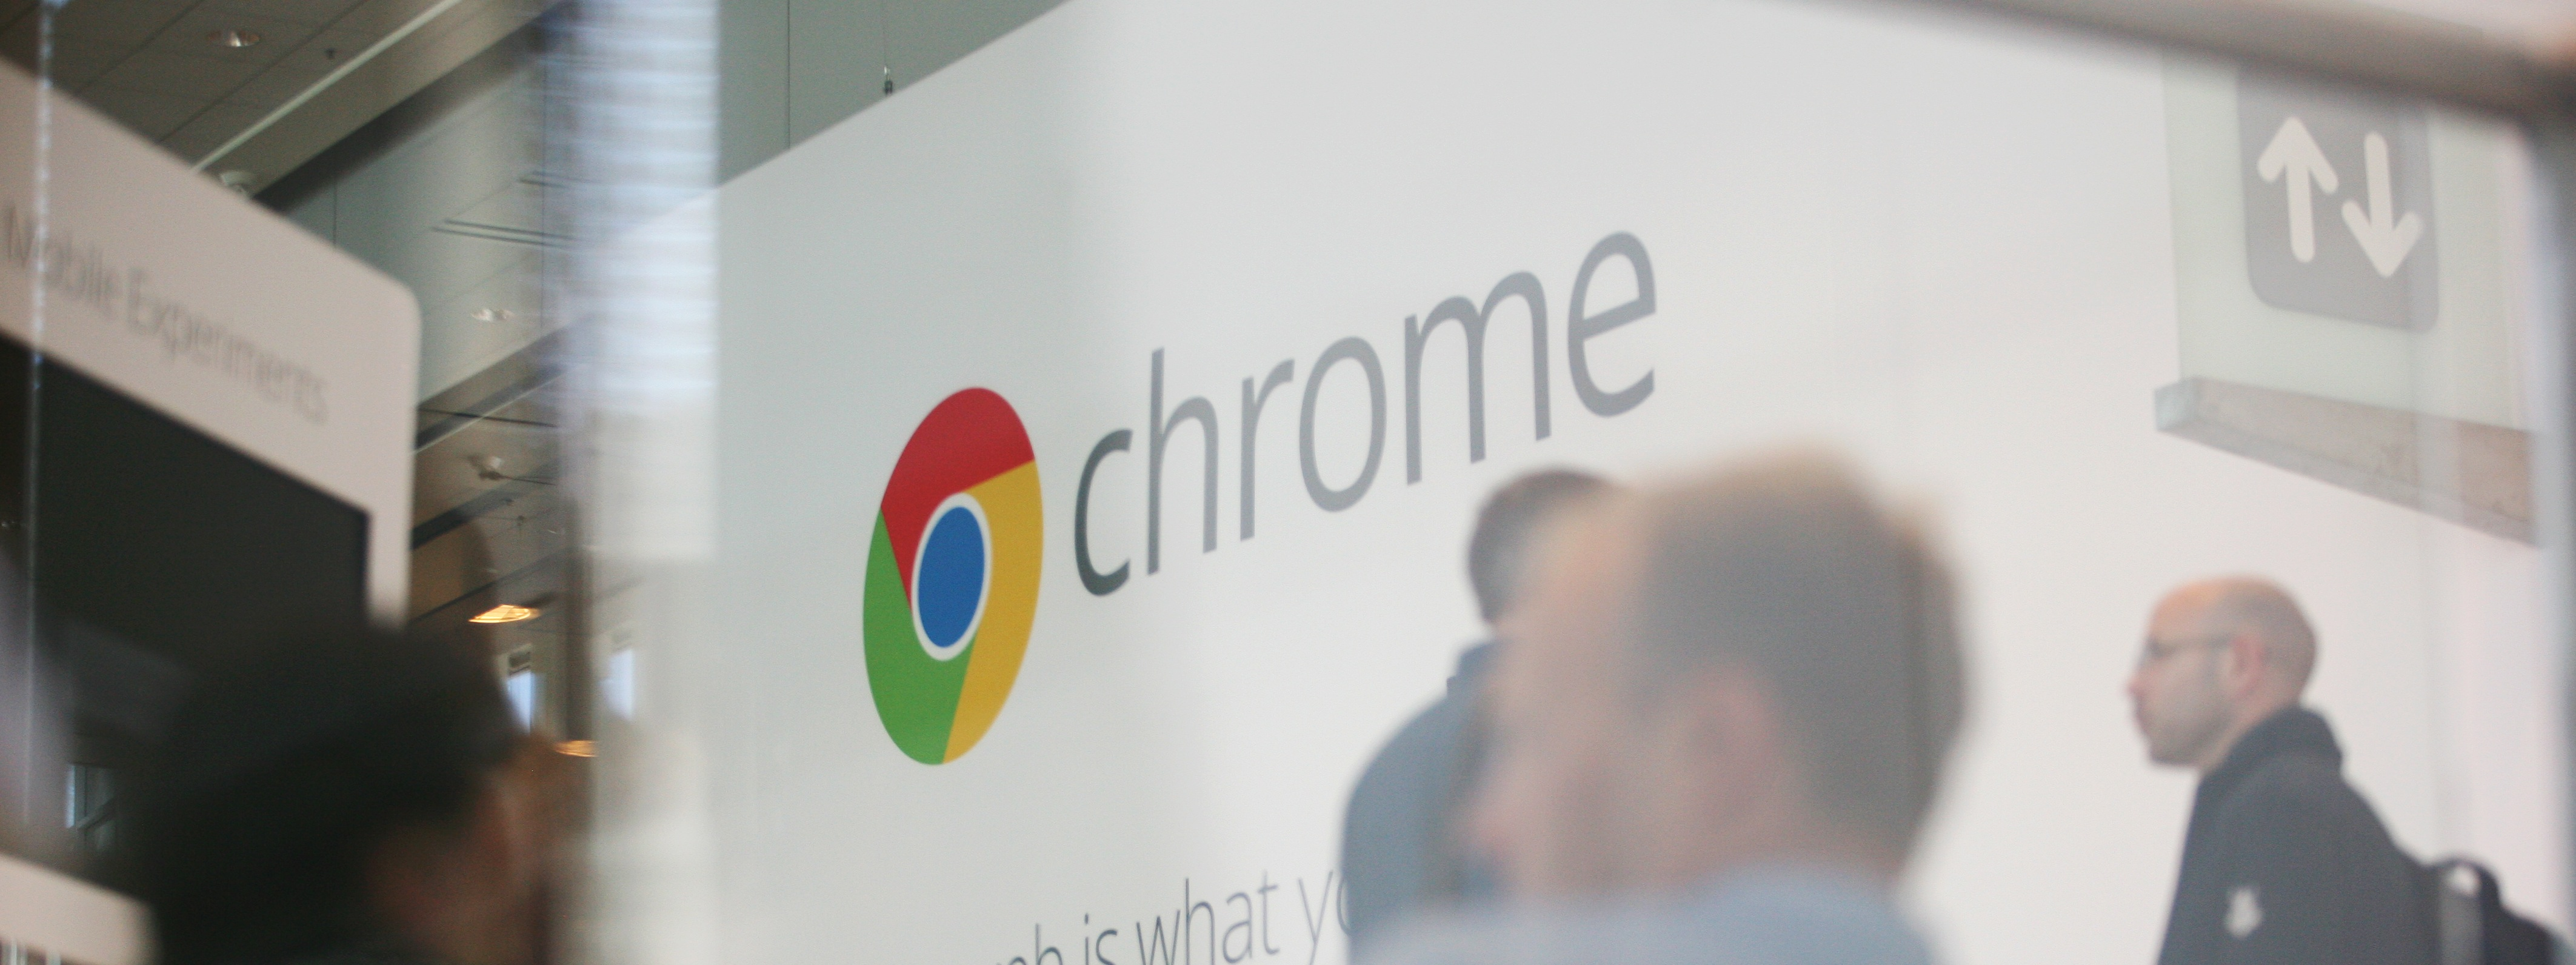 Google speeds up Chrome by compiling JavaScript in the background